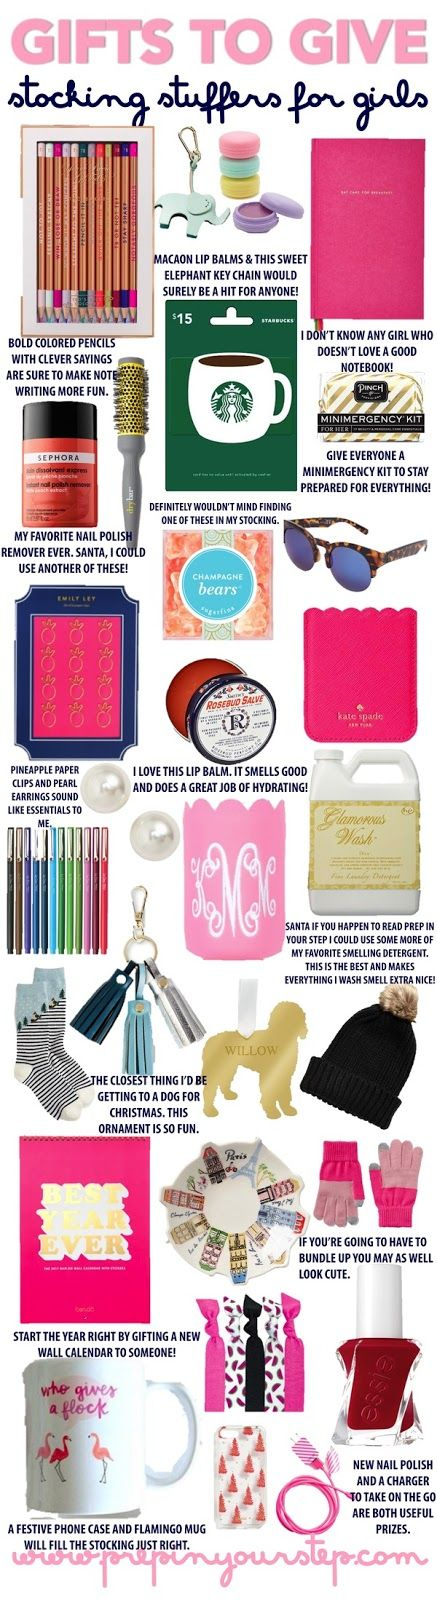 stocking stuffers for girls all under $30